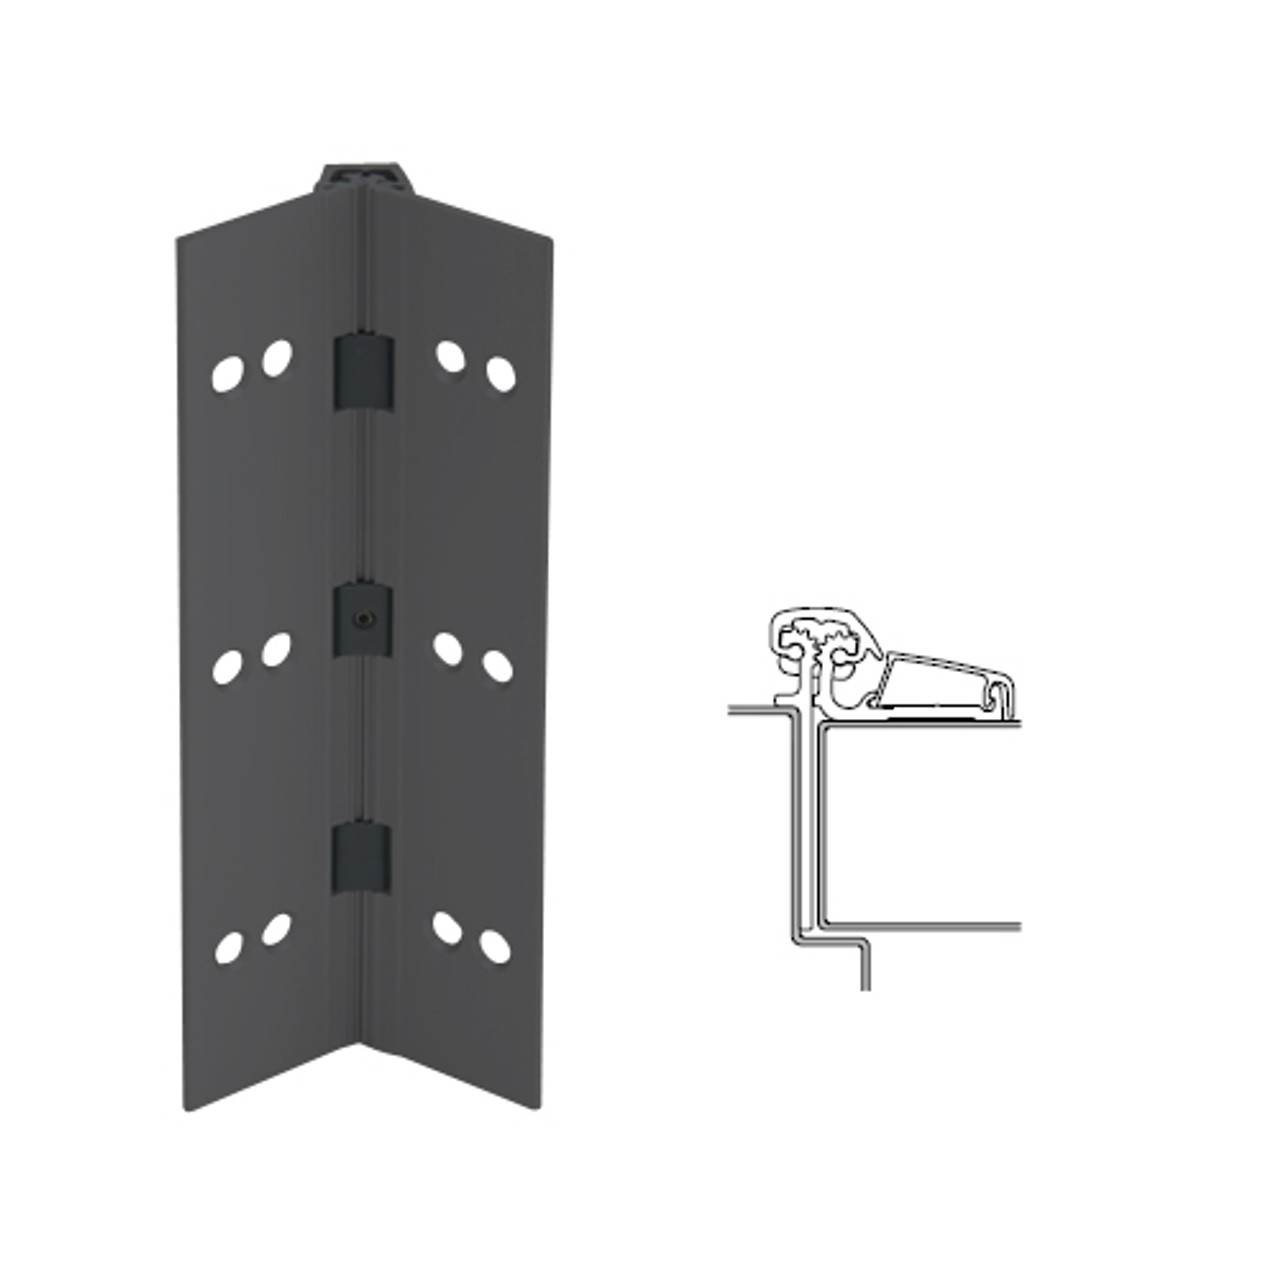 054XY-315AN-95 IVES Adjustable Half Surface Continuous Geared Hinges in Anodized Black